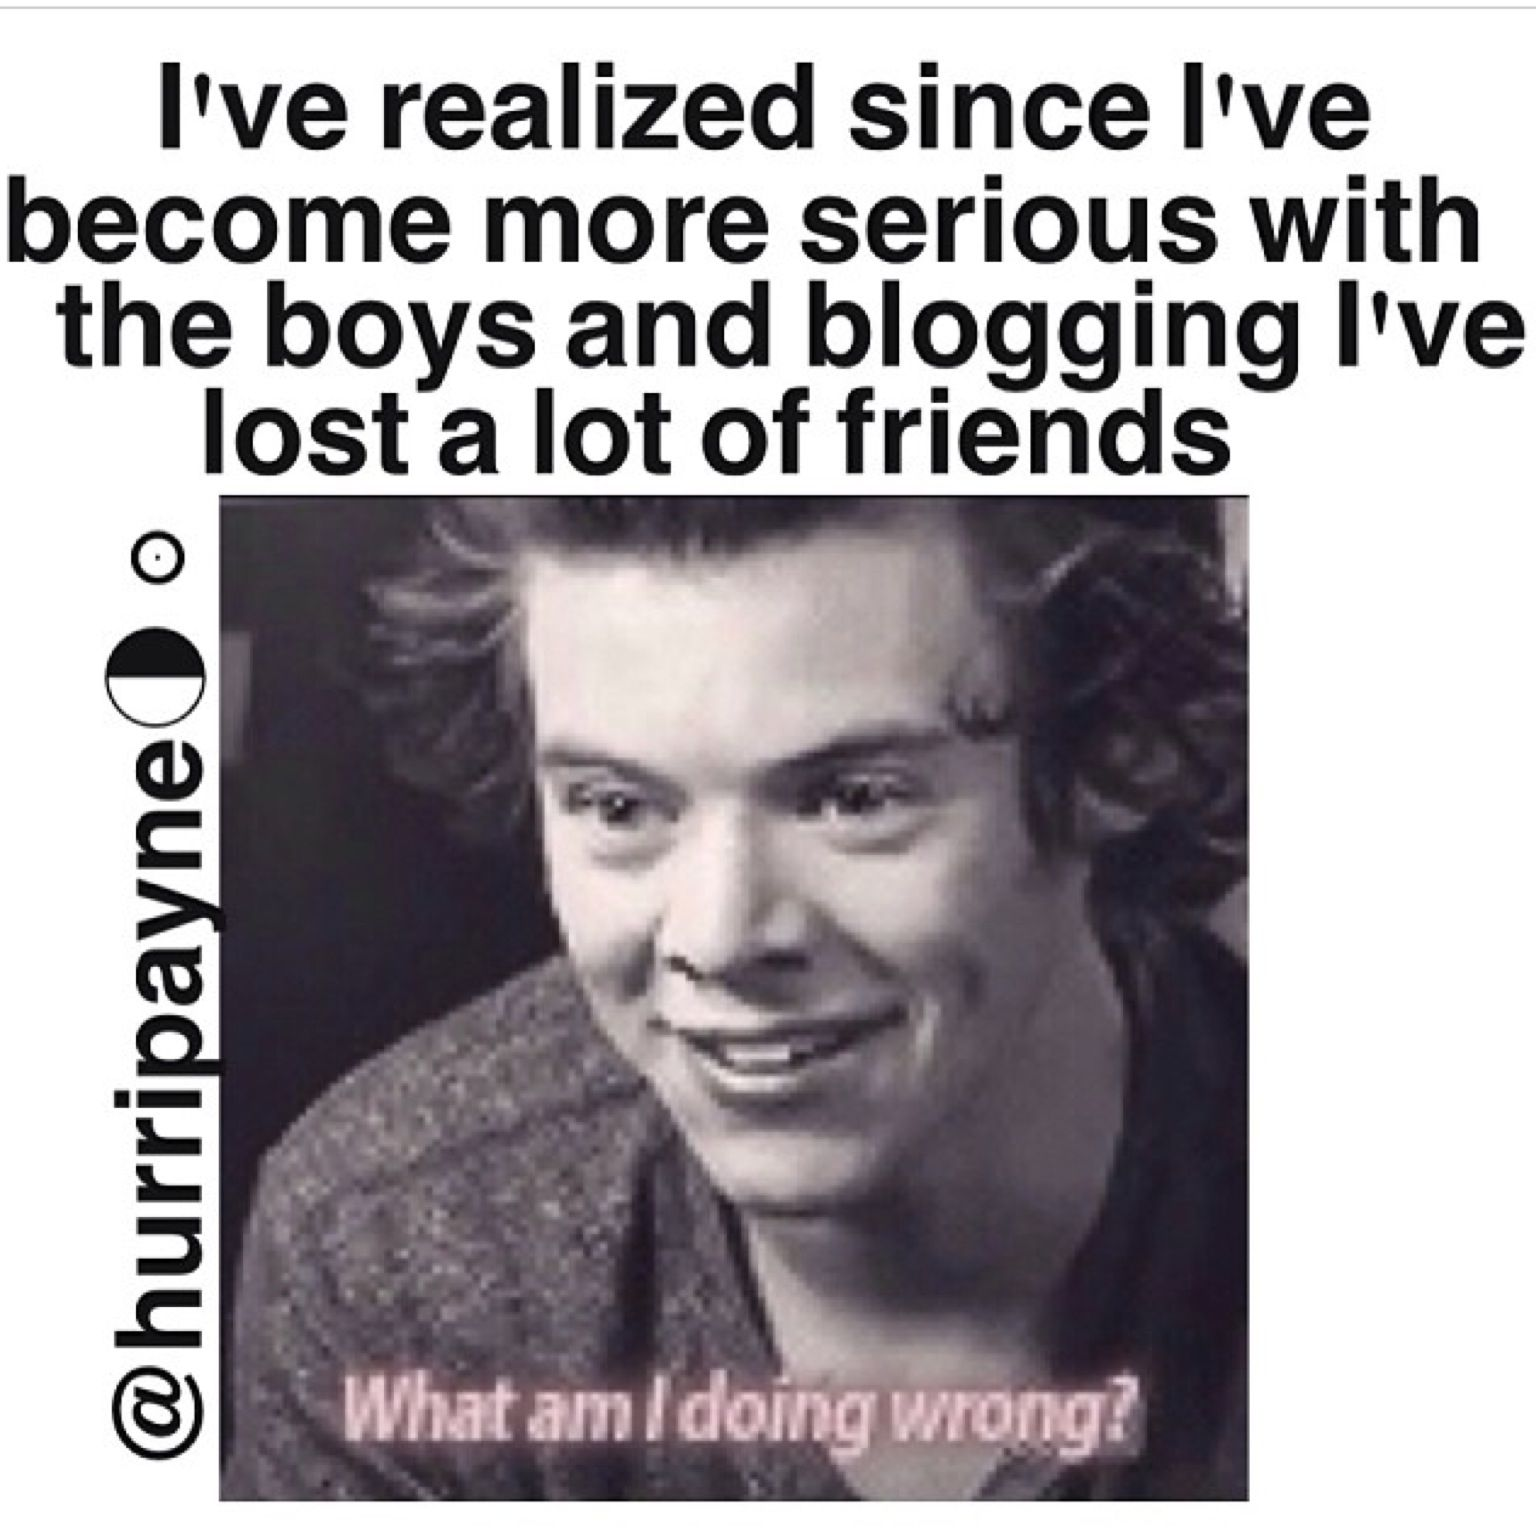 67039ac22386c5856428814d6cd22204 one direction meme 1d memes pinterest zayn malik and zayn